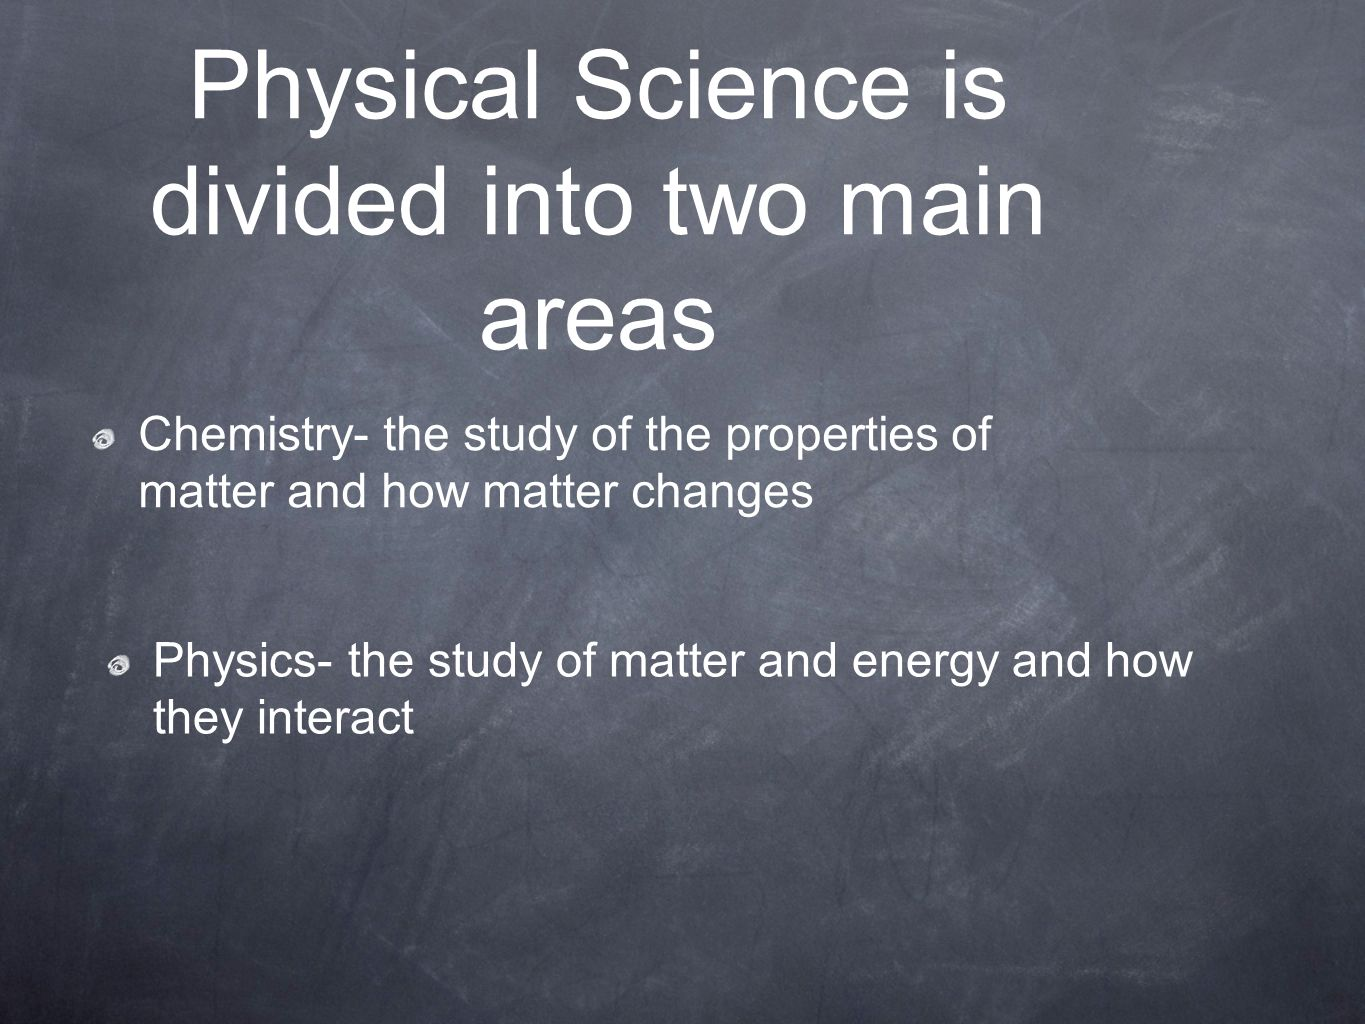 Physical Science is divided into two main areas